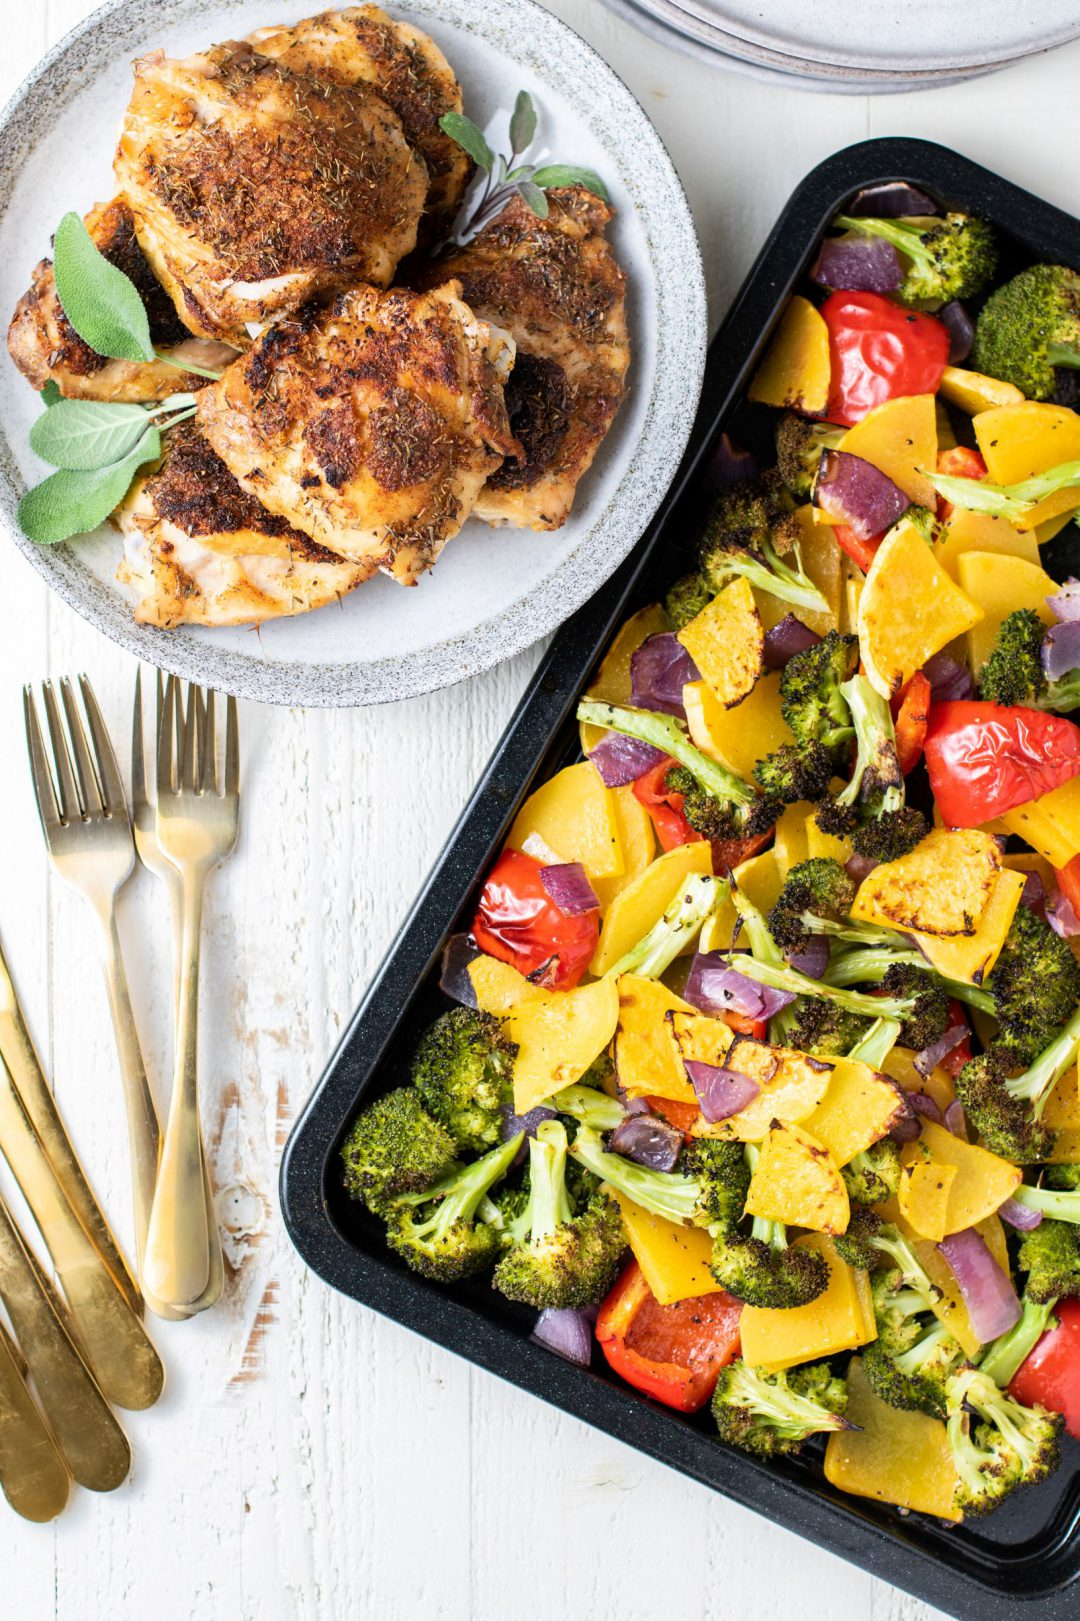 sheet pan with veggies and chicken